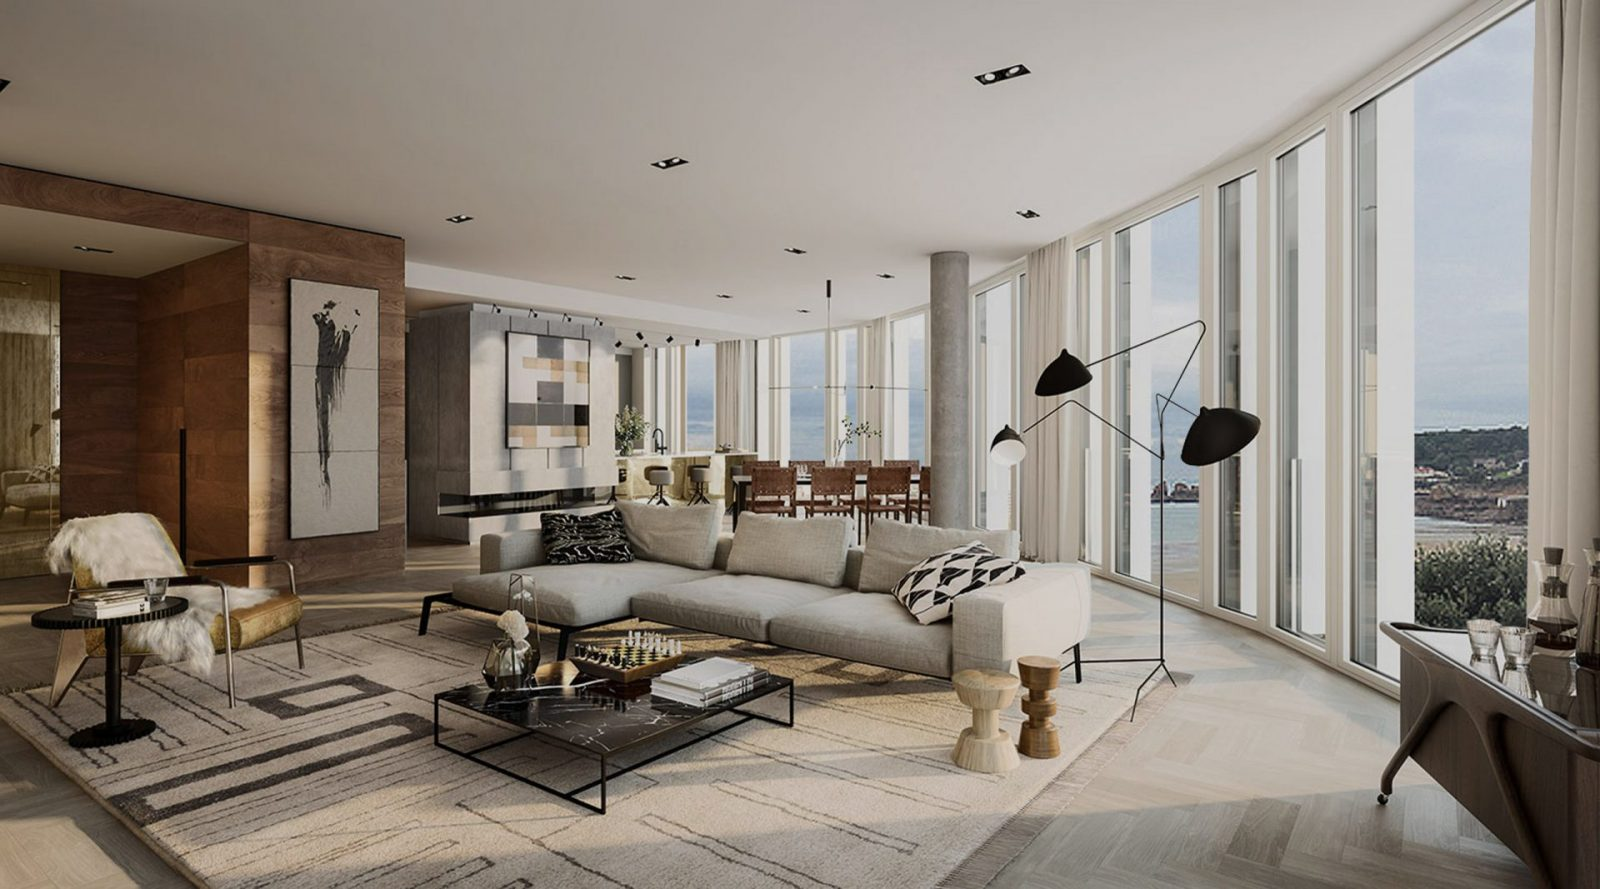 interiors st brelades bay modern hotel apartment building architecture architects jersey architects1 1